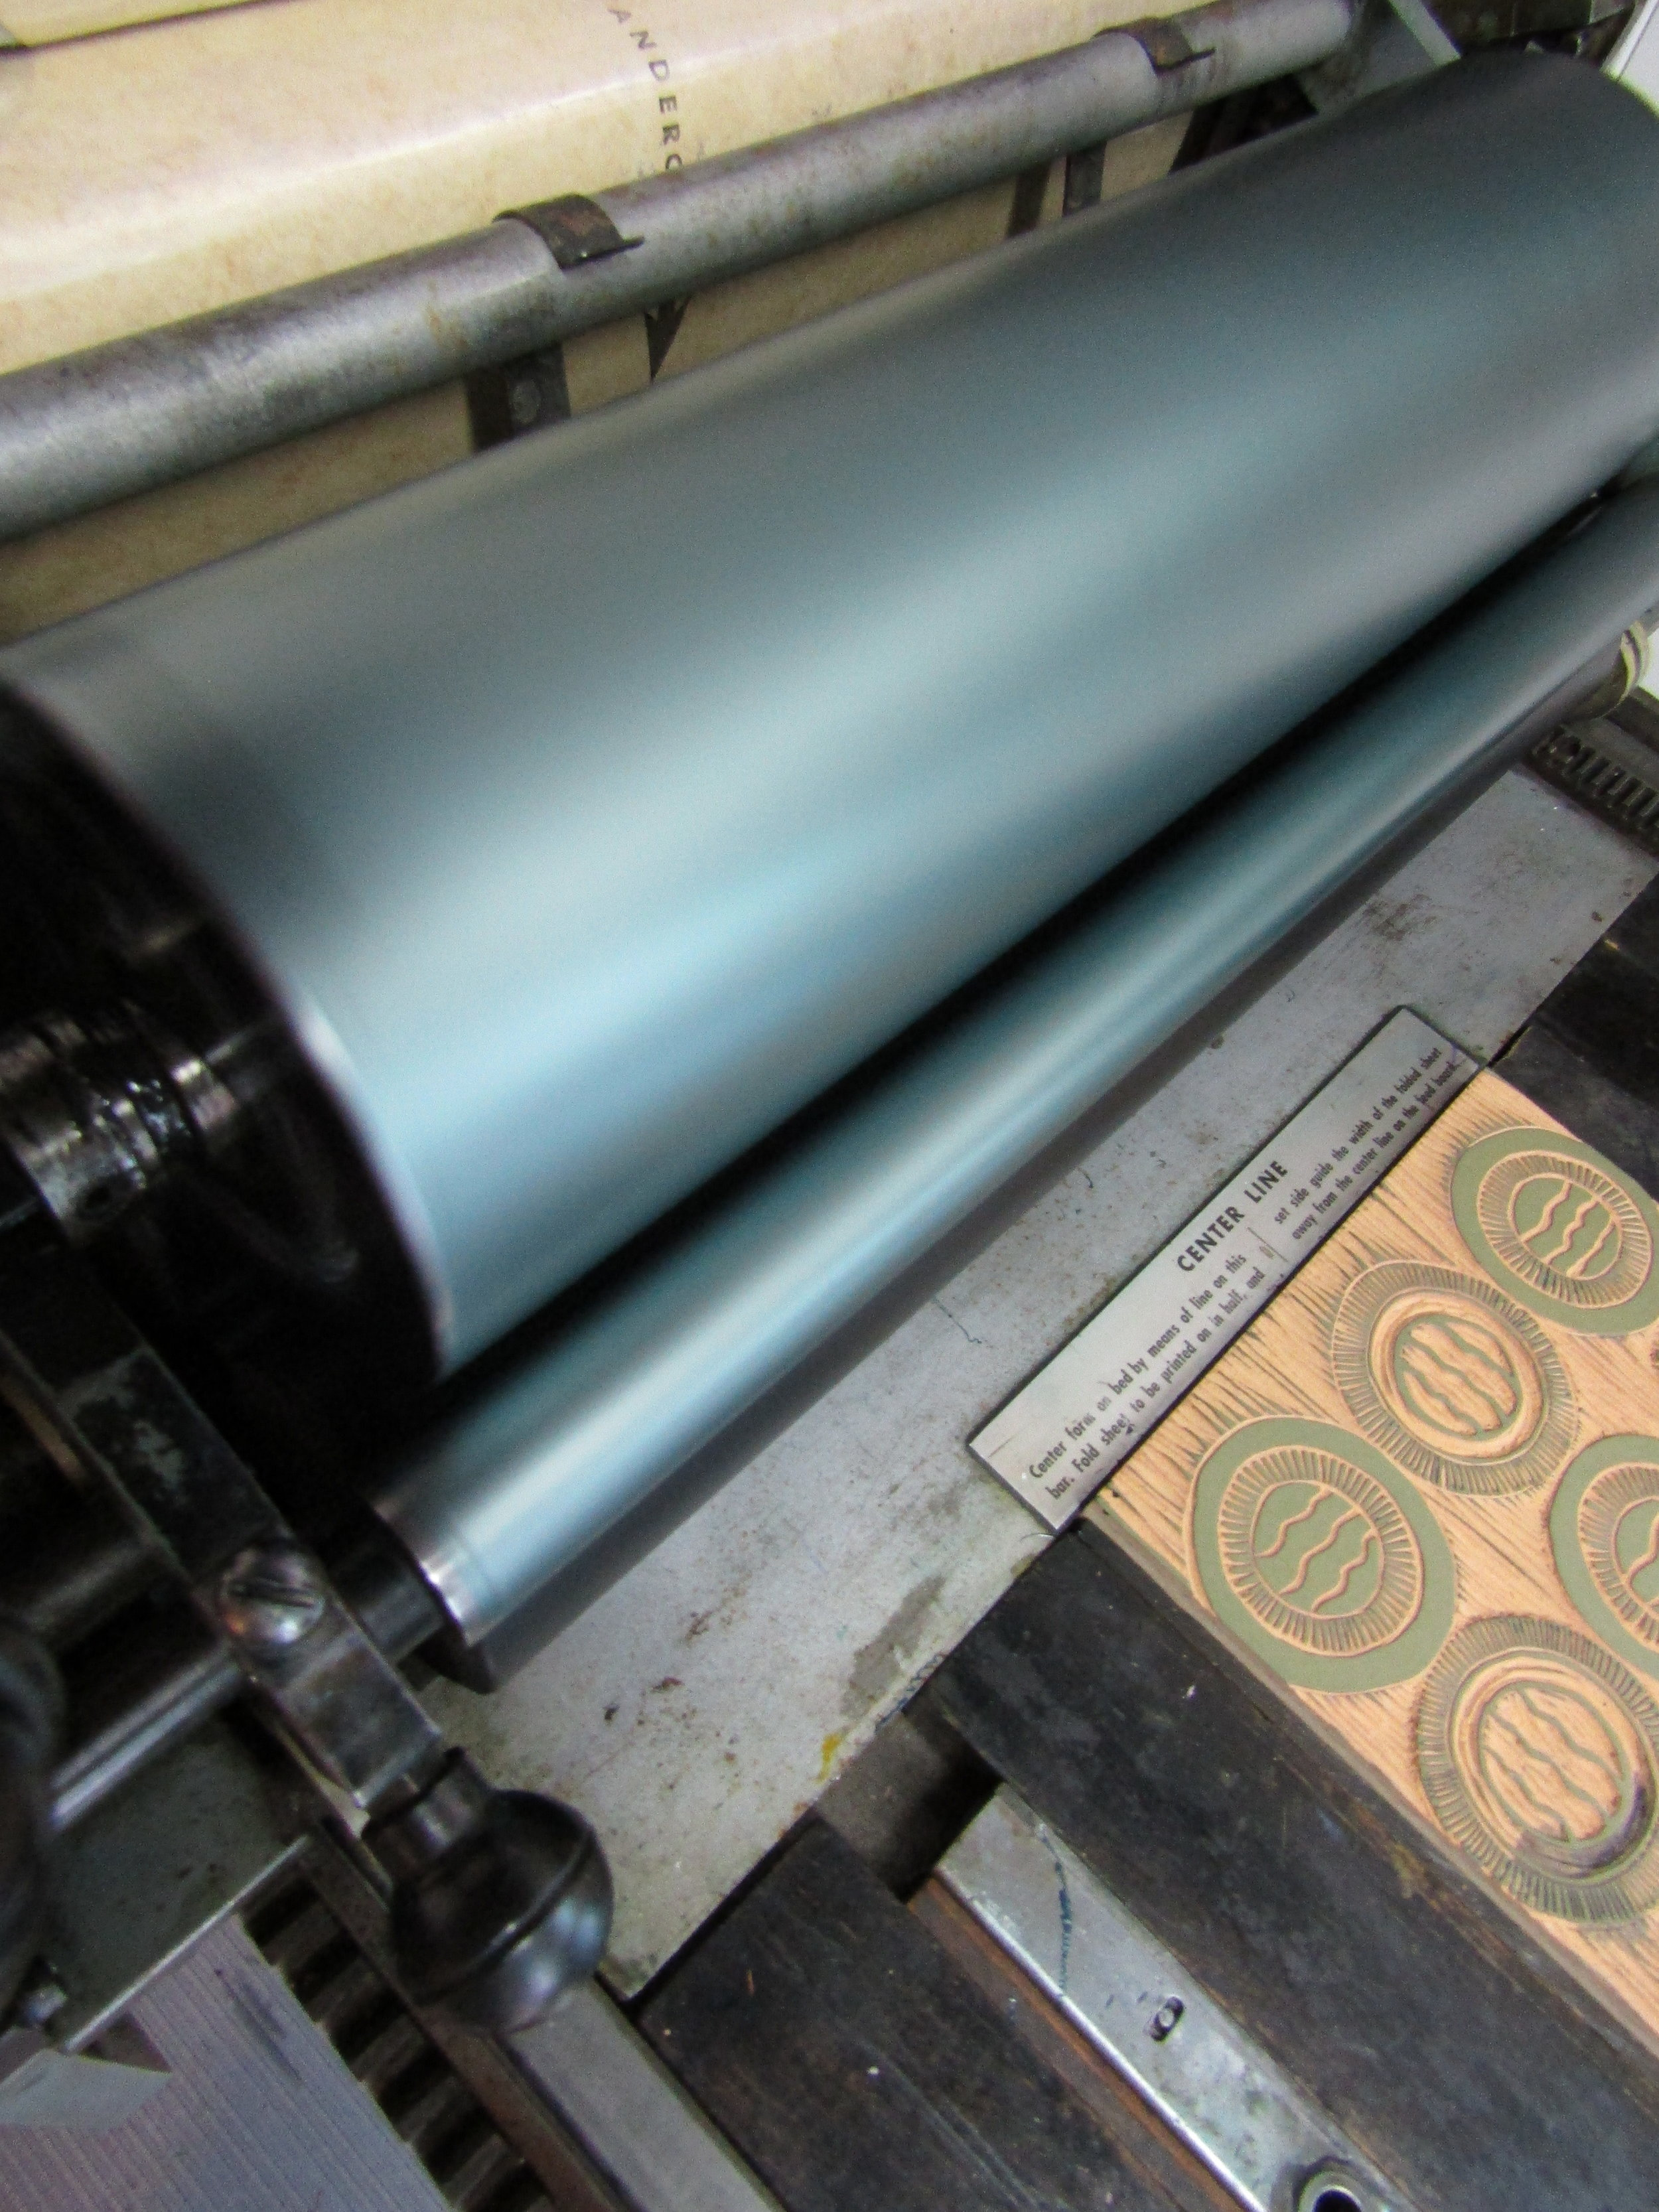 I so love the look of my press inked up and printing1